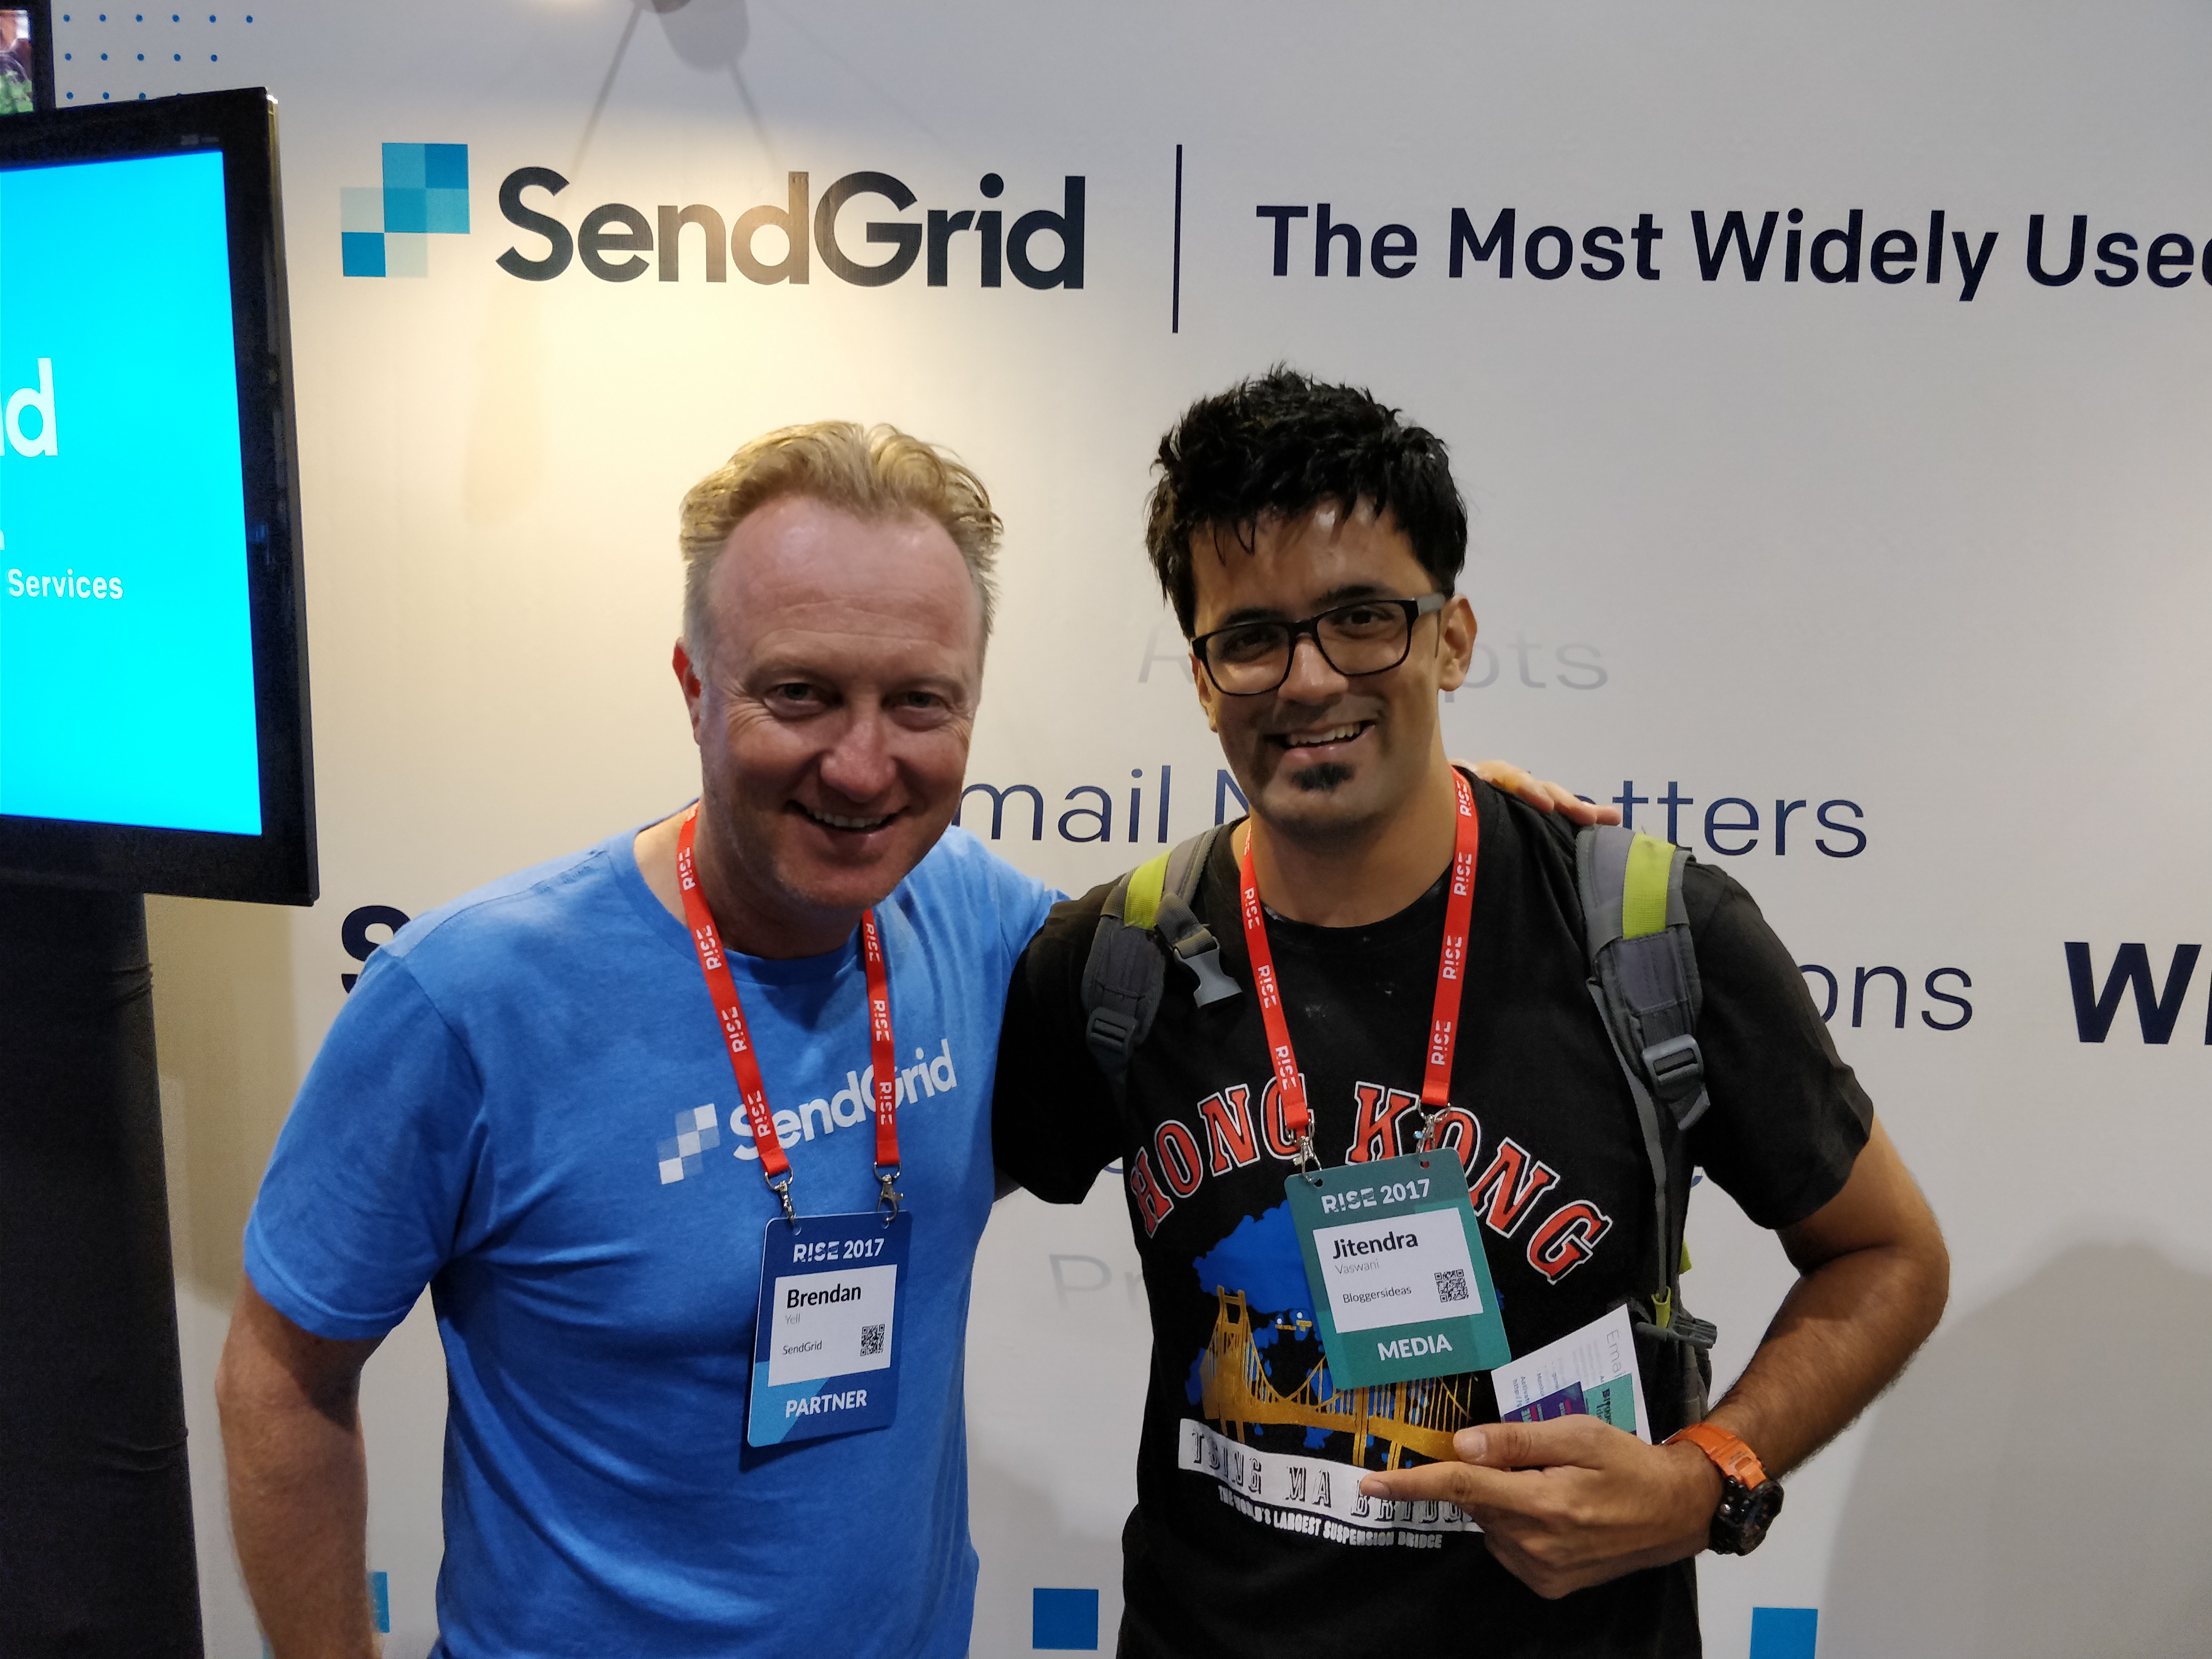 Brendan From Sendgrid